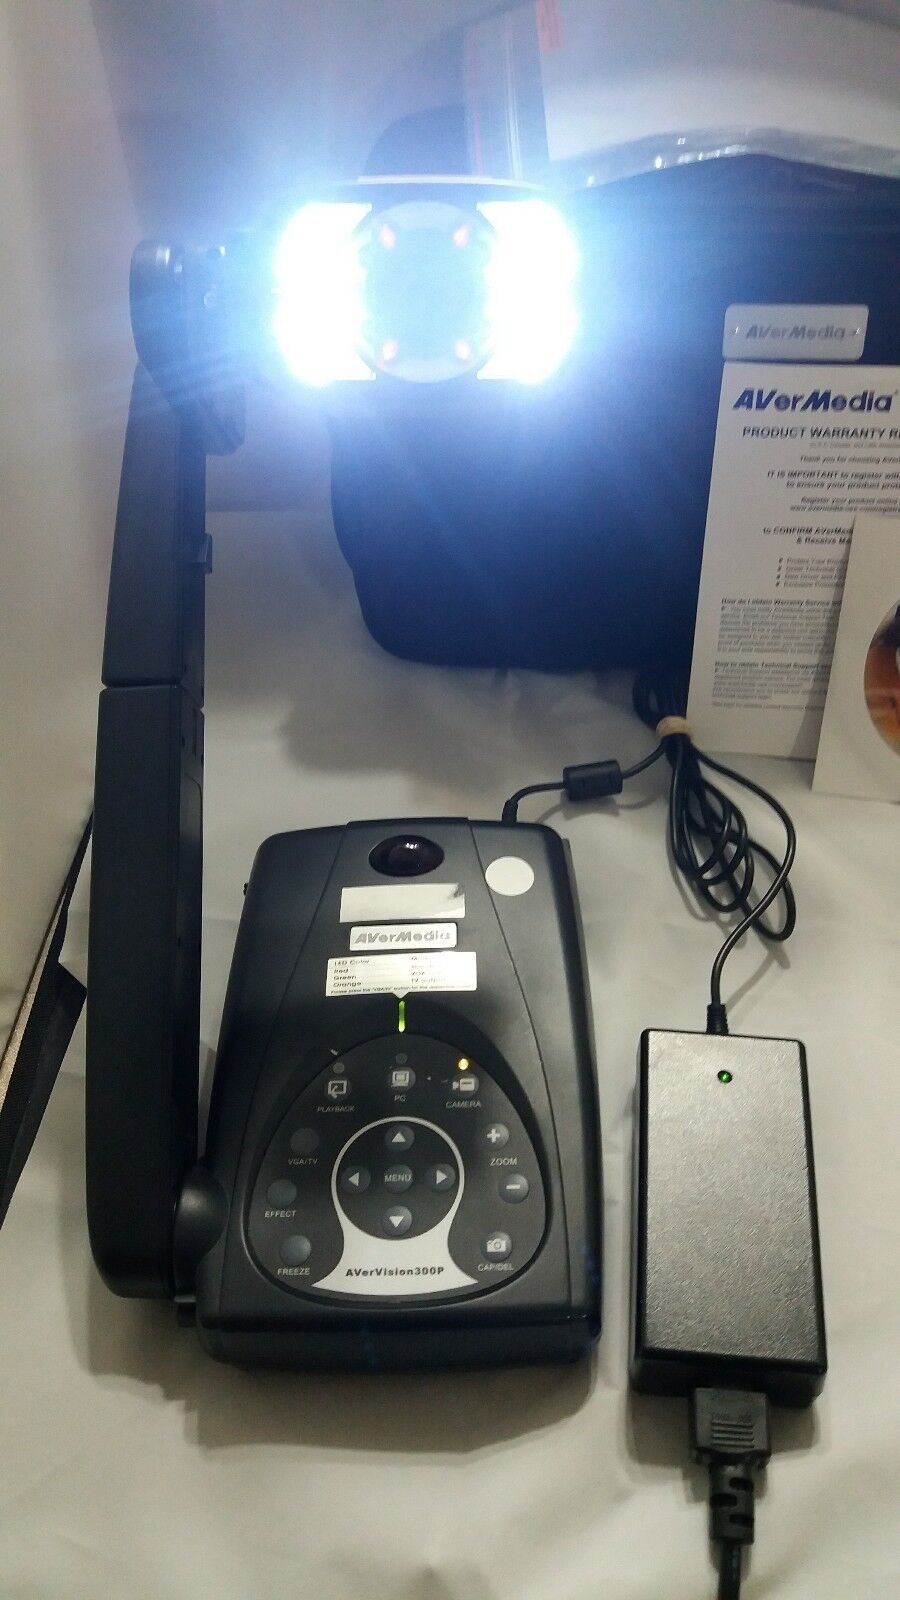 AVerMedia AVerVision 300P Video Presentation Camera with power adapter.